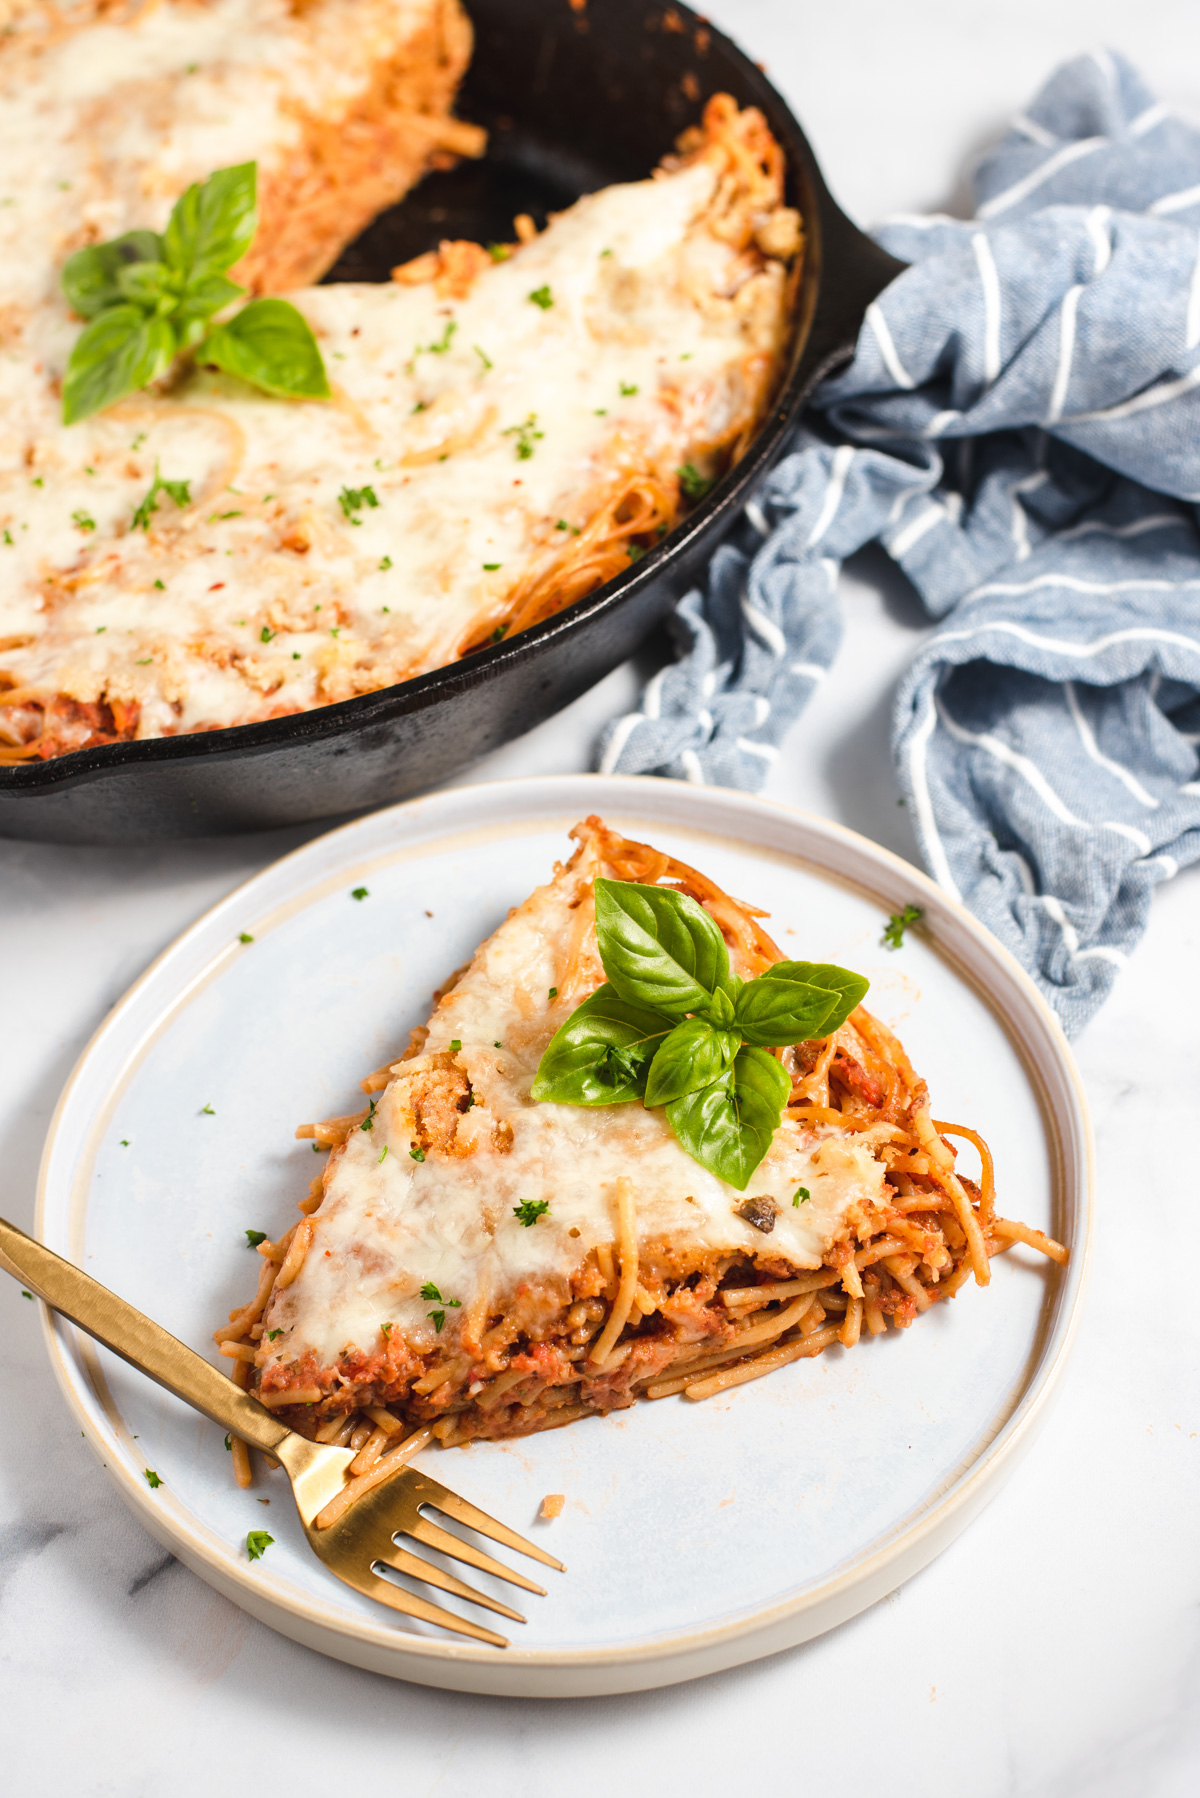 Slice of spaghetti pie on a plate with cast iron pan in the background